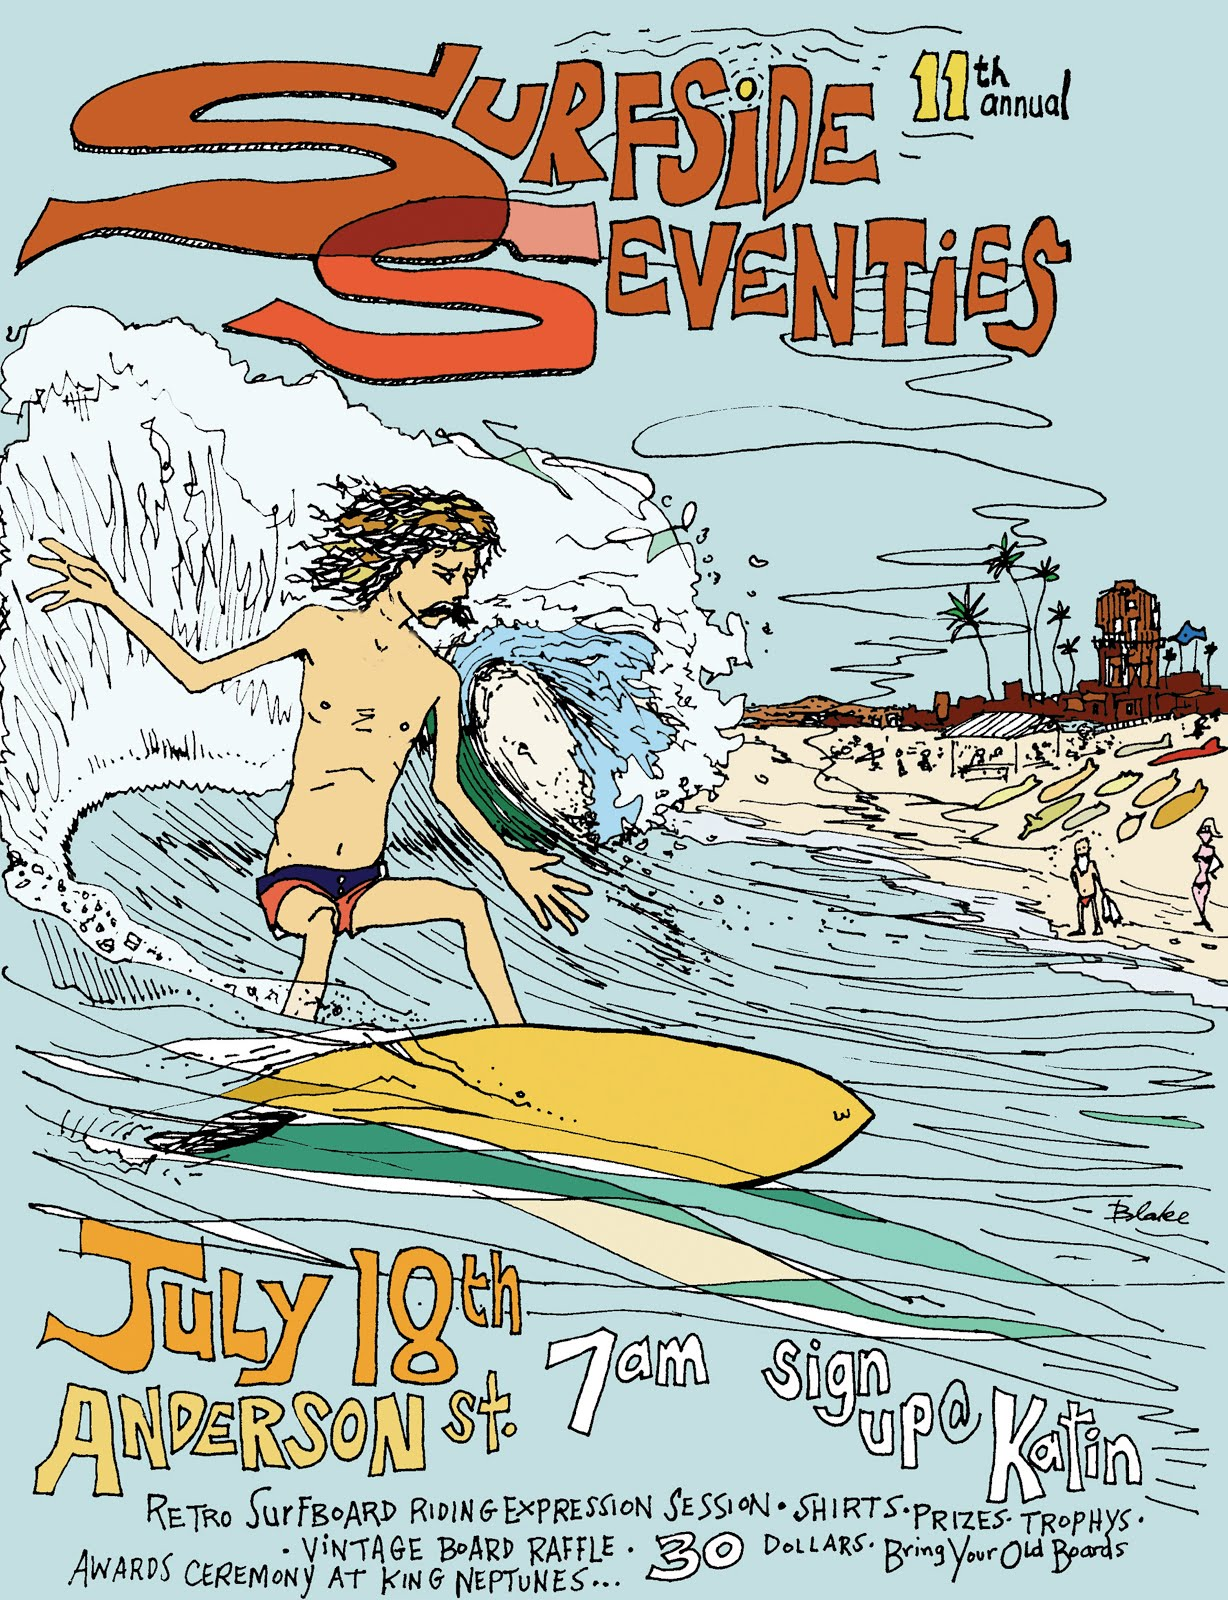 2009 11th annual Surfside Seventies poster